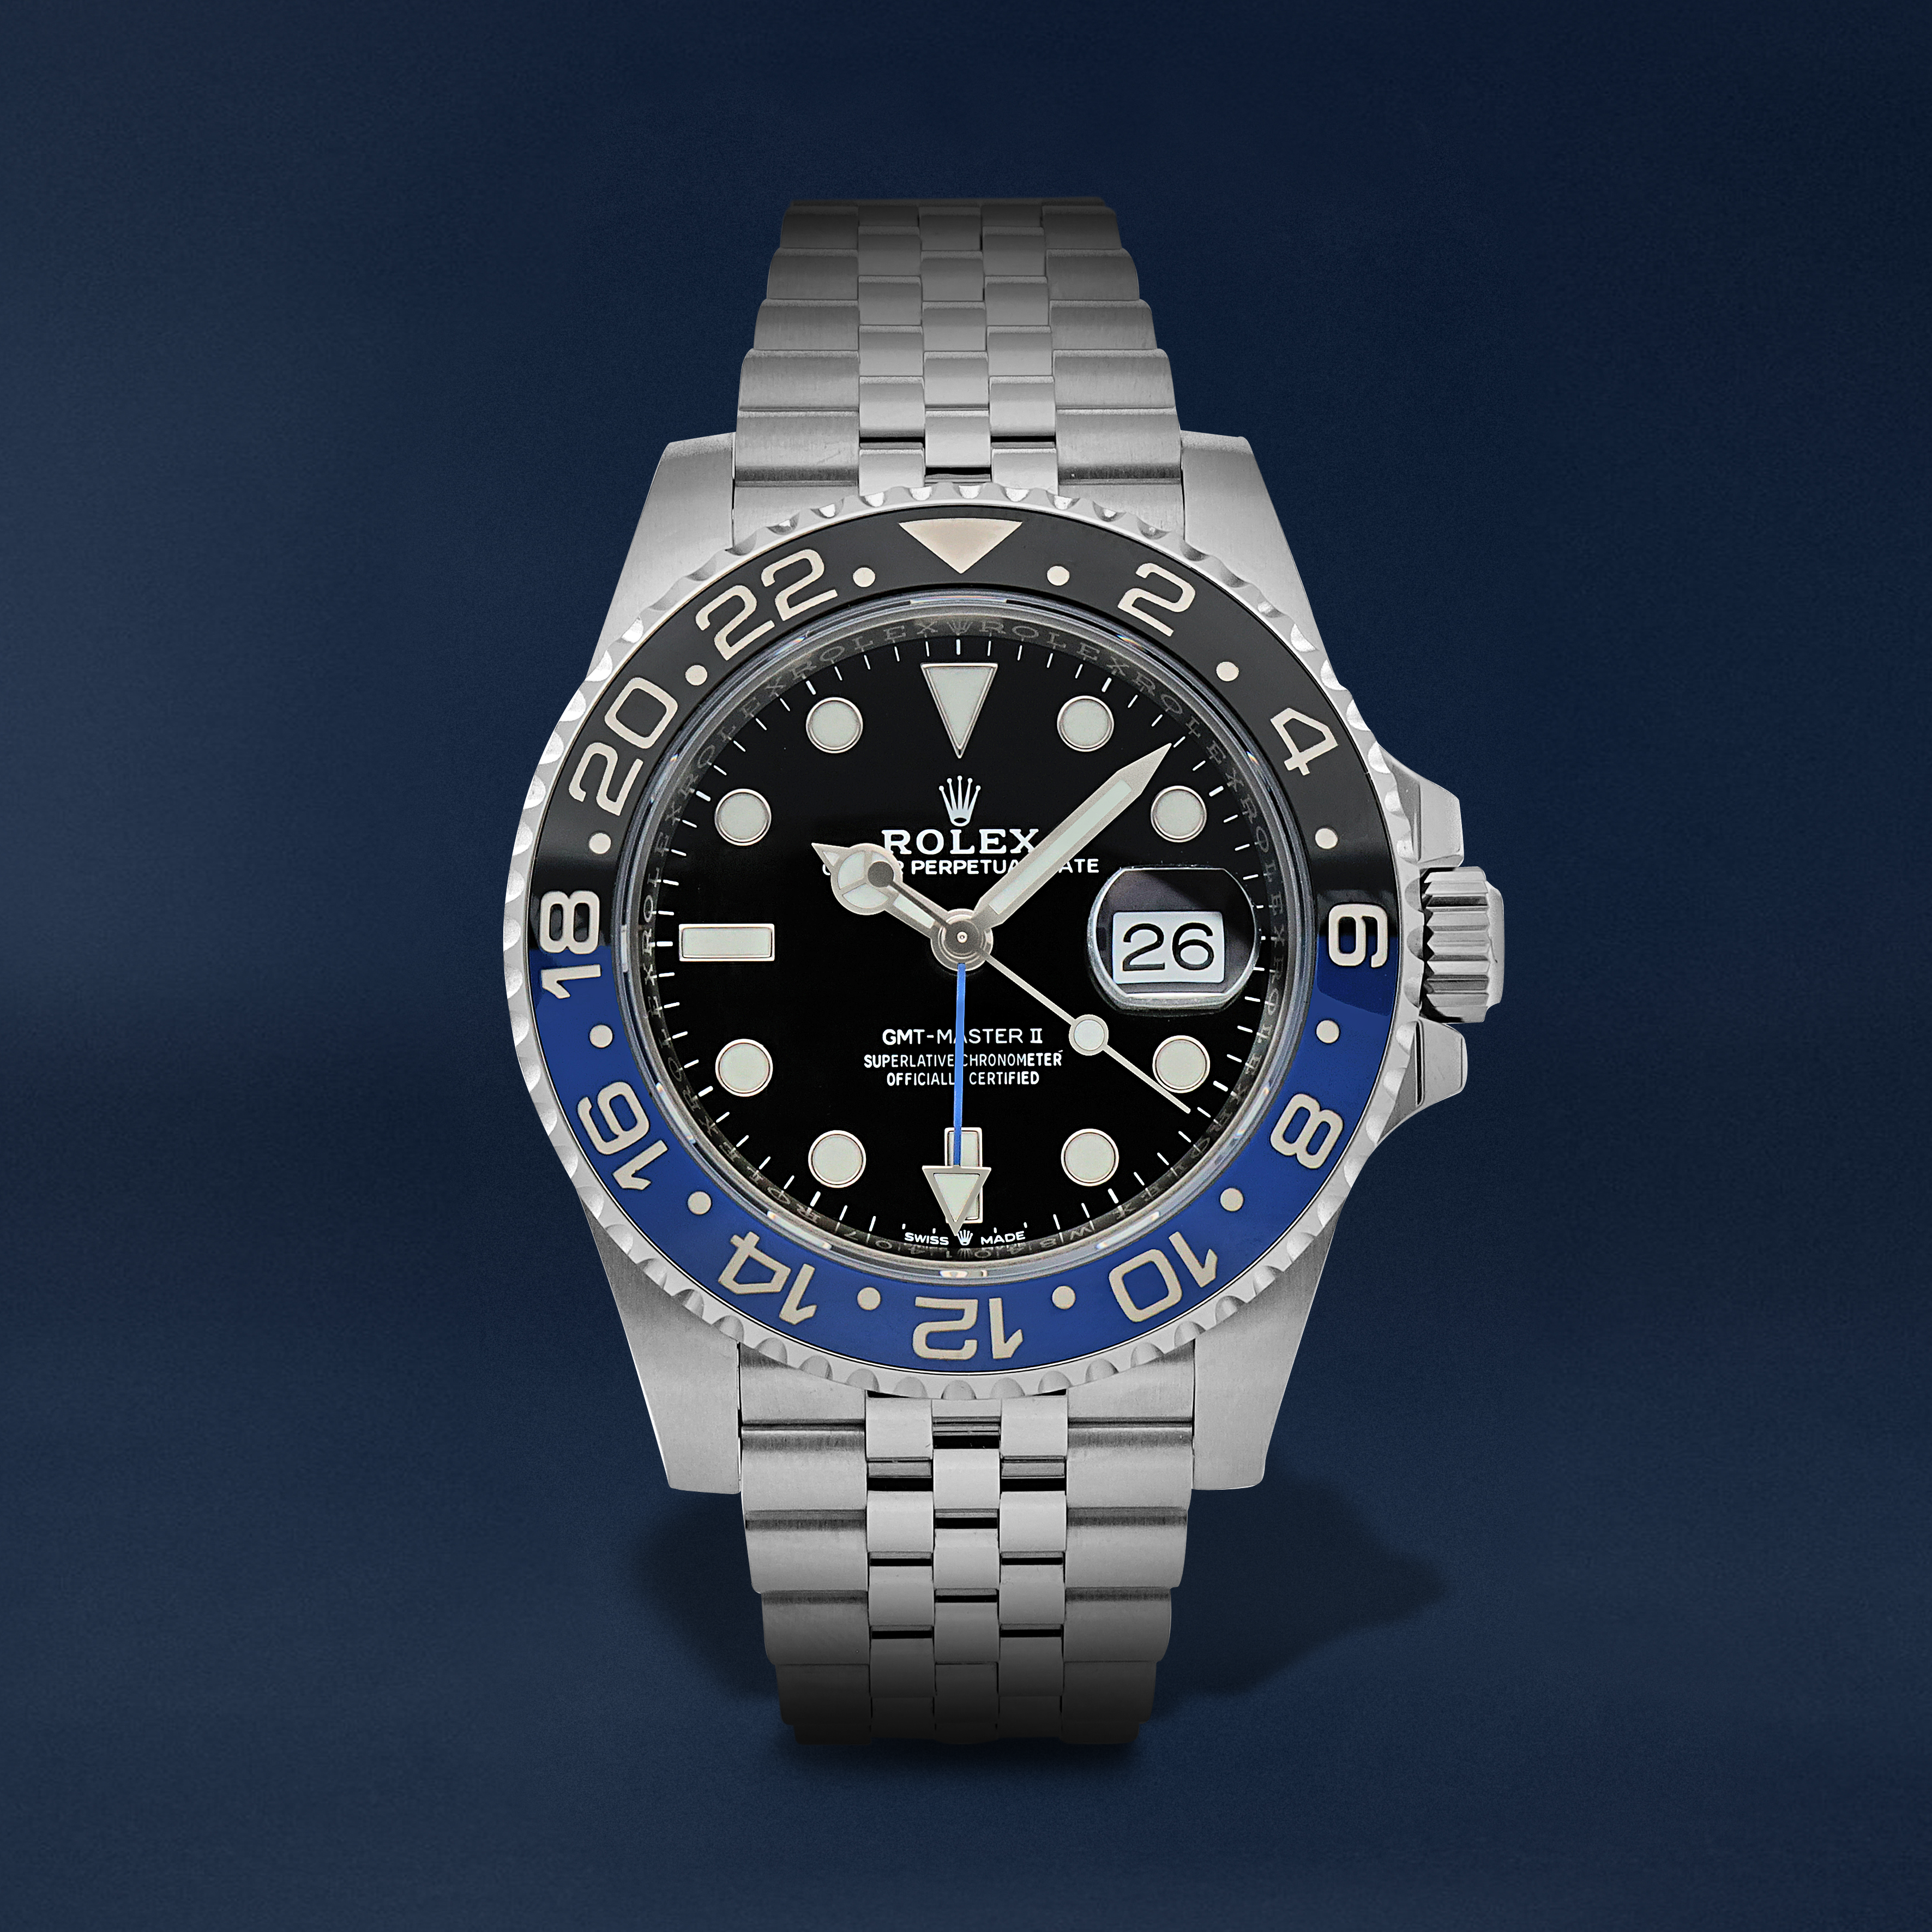 gmt-master-ii-batman-reference-126710blnr-a-stainless-steel-automatic-dual-time-zone-wristwatch-with-date-and-bracelet-6ae6